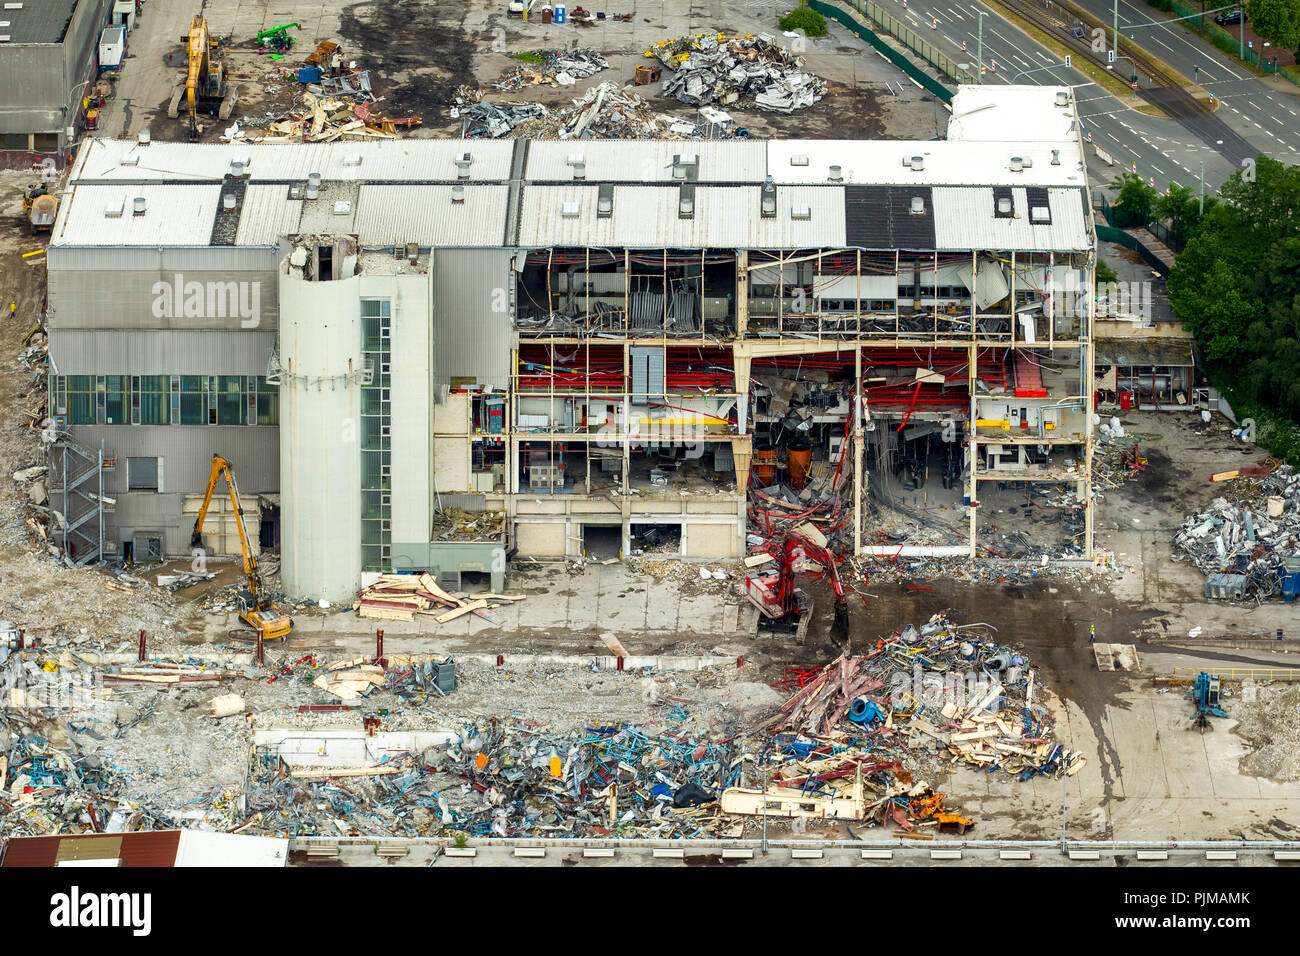 Demolition works at OPEL Plant 1, automotive, structural change, auto industry, Bochum, Ruhr area, North Rhine-Westphalia, Germany - Stock Image